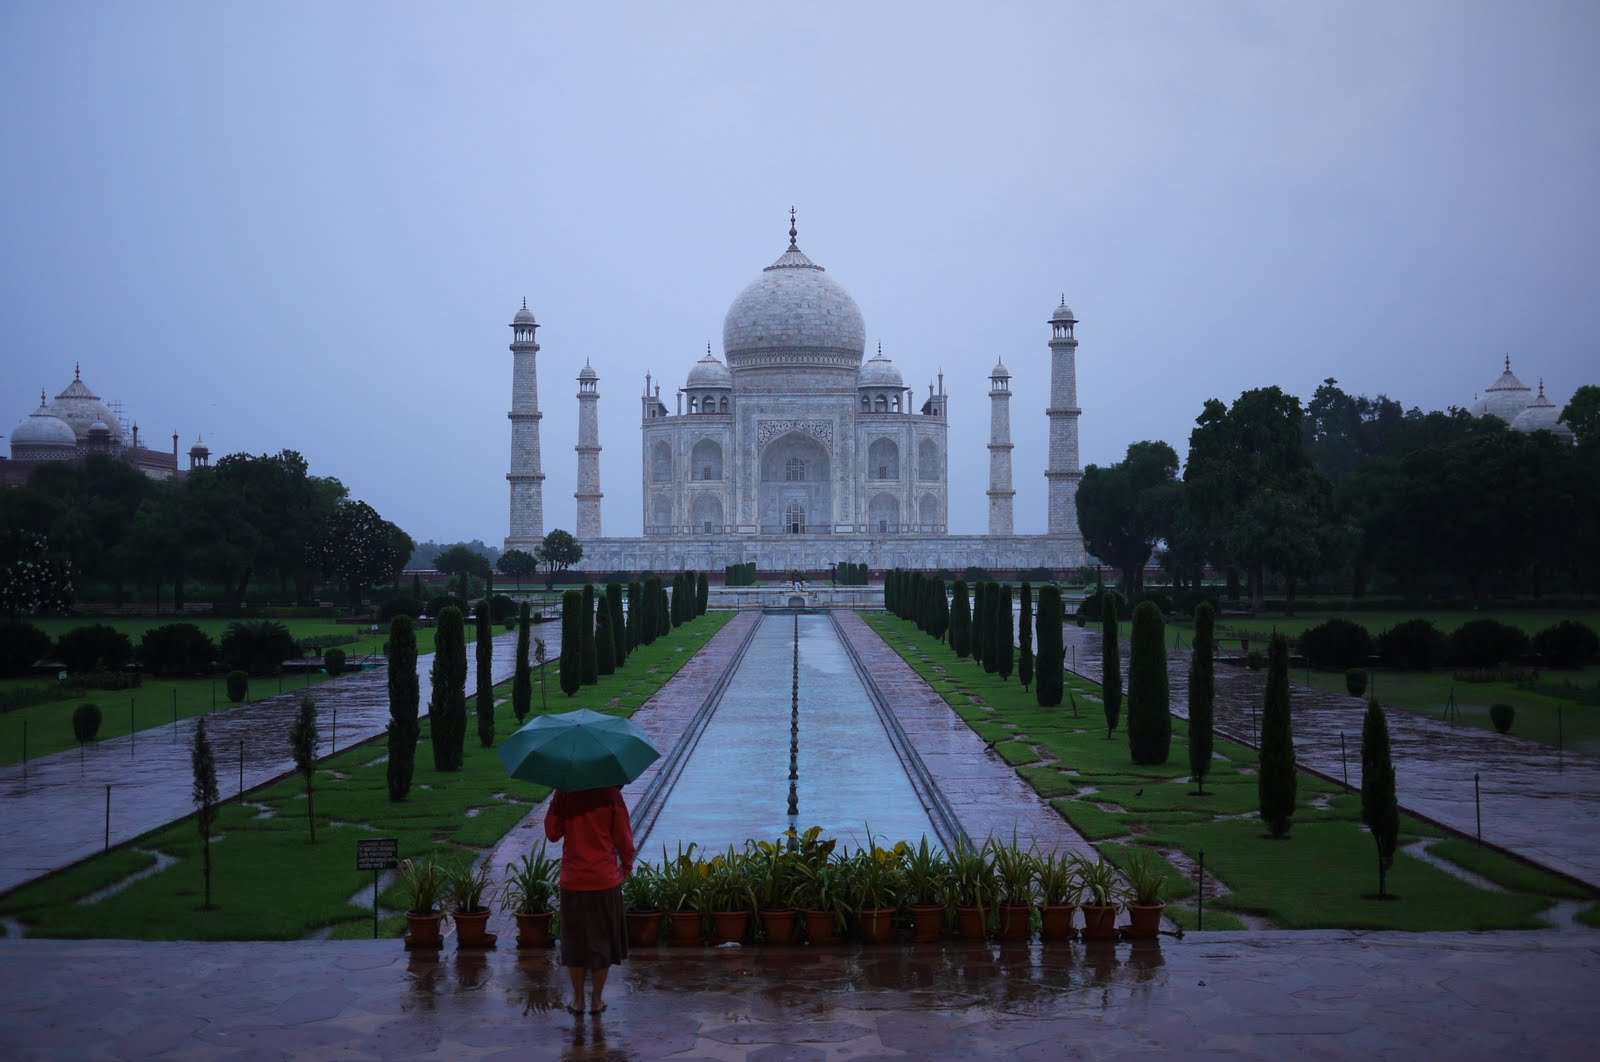 https://campusghanta.com/wp-content/uploads/2019/06/33-Monsoon-Images-From-India-That'll-Make-Your-Day.JPG